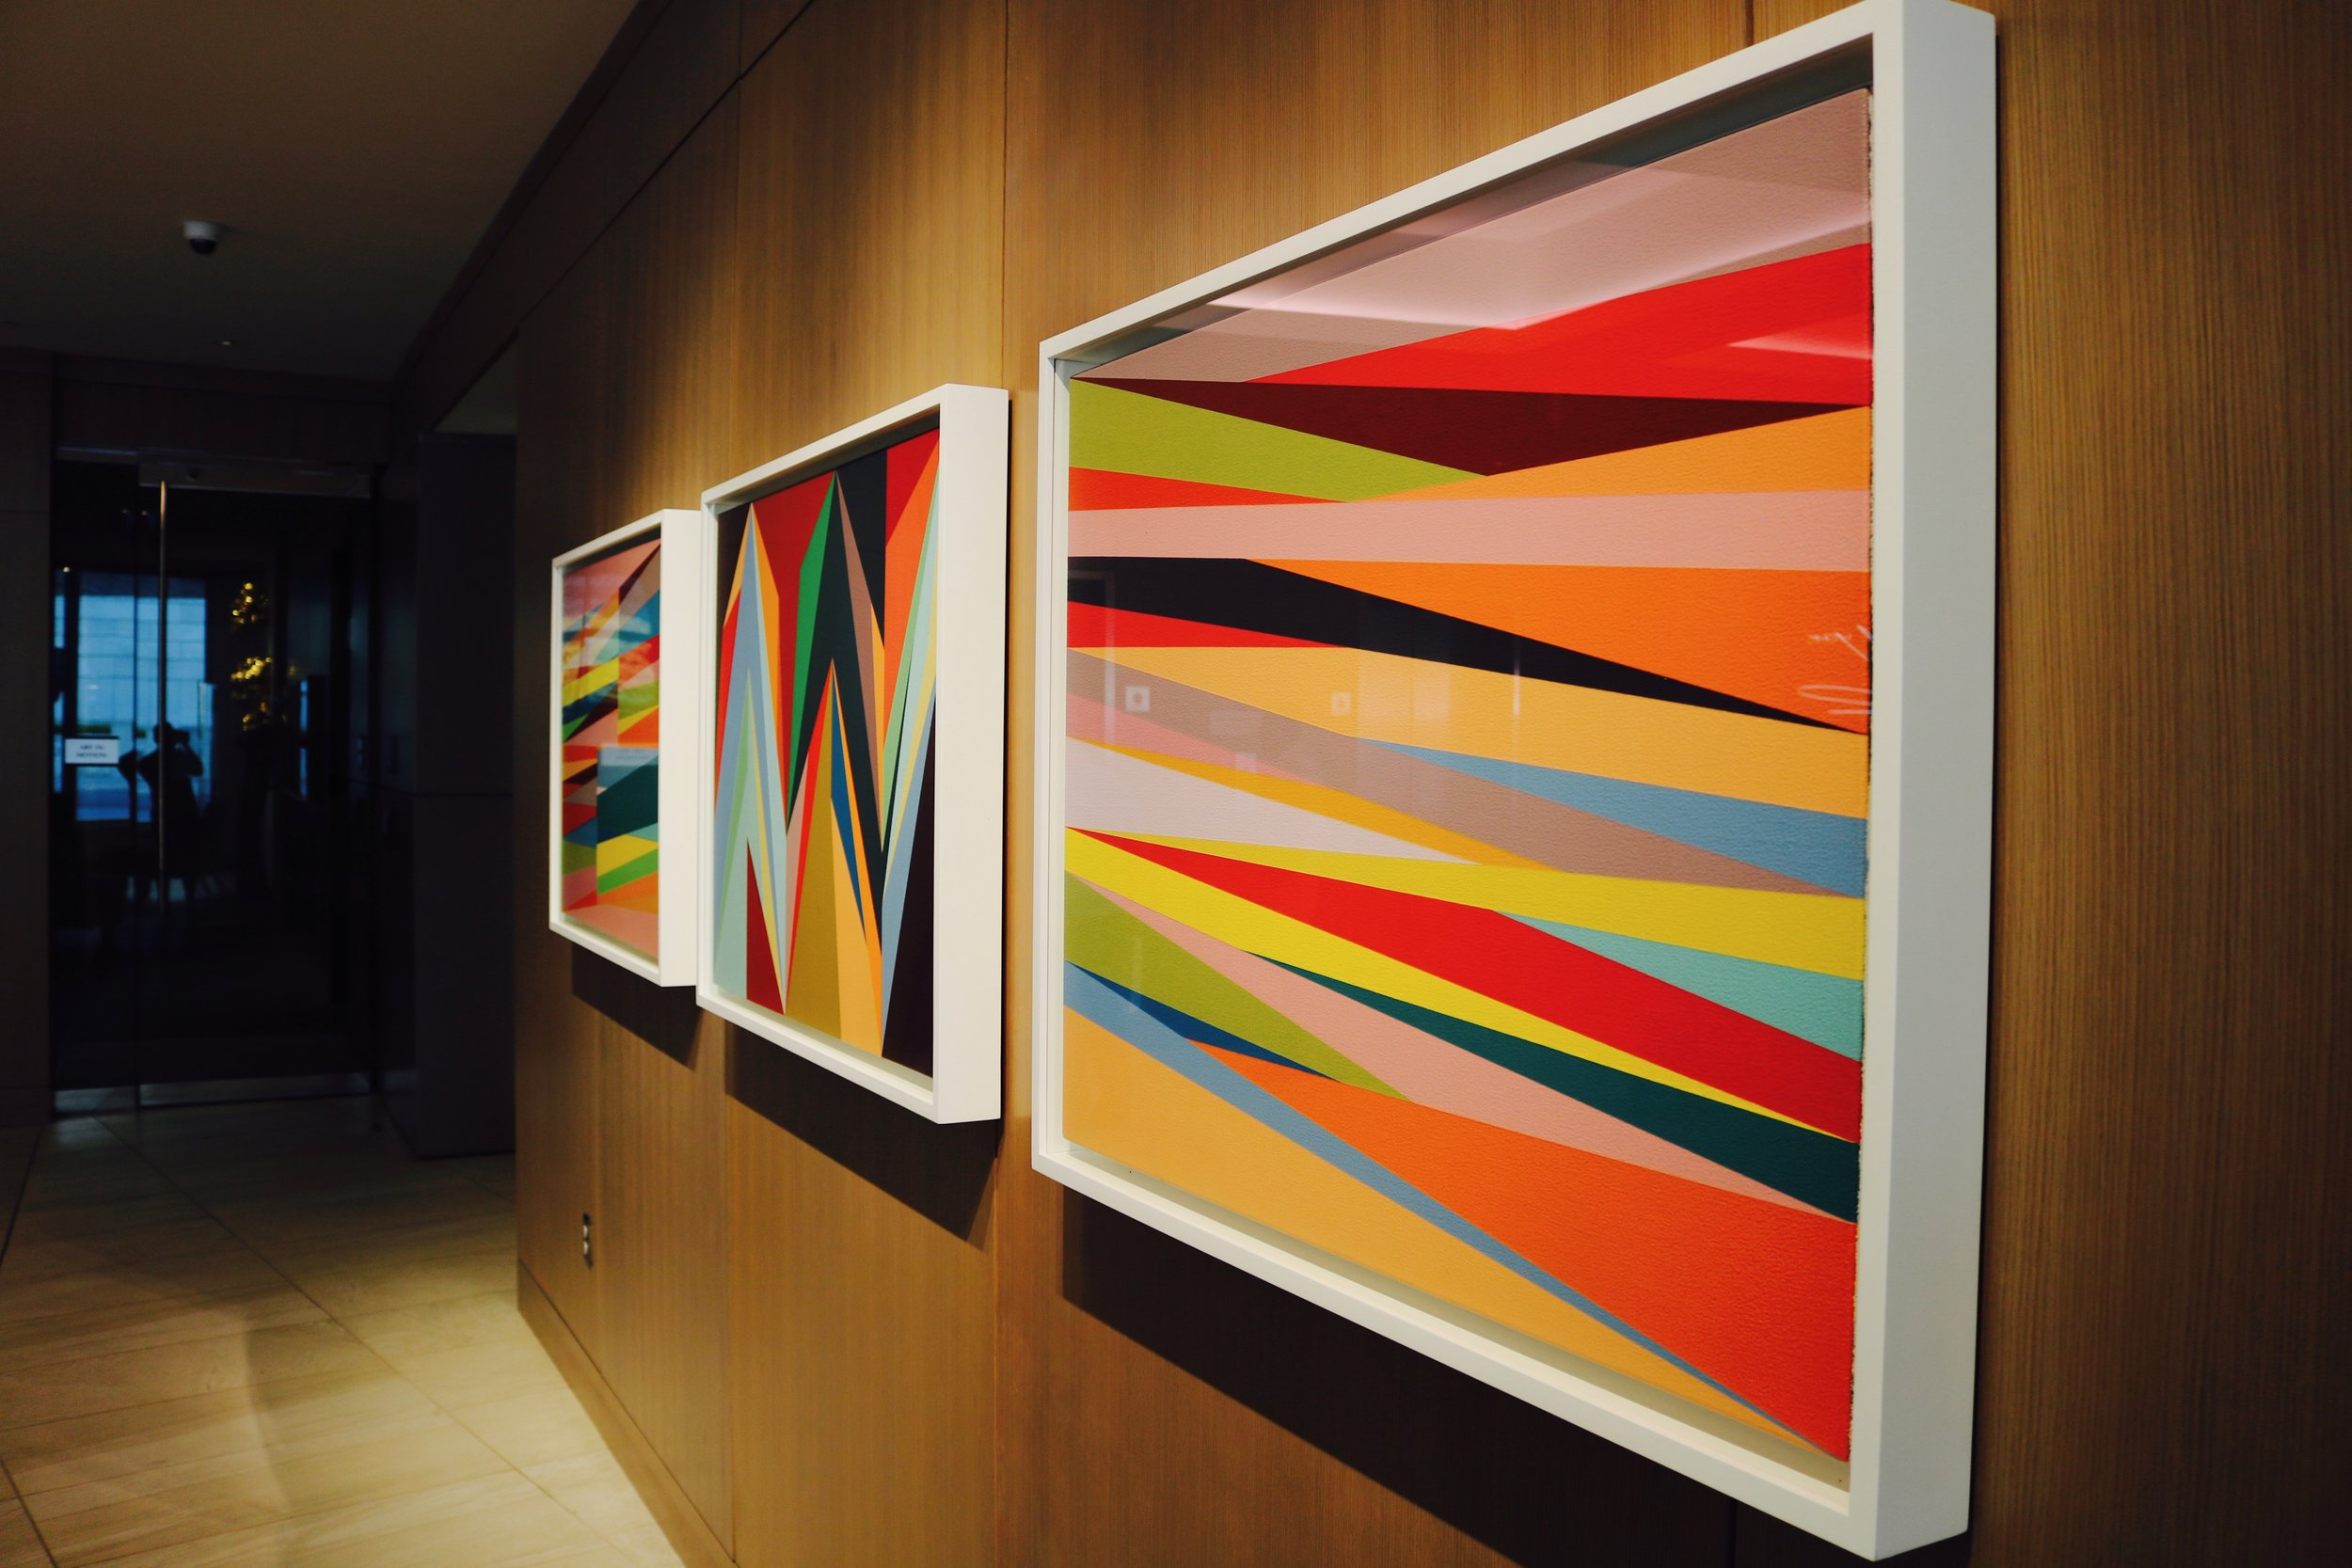 """Artist: Odili Donald Odita """"Expand,"""" """"Flashpoint,"""" & """"Windows,"""" all 2014 Photo by: DJB for TBOT"""